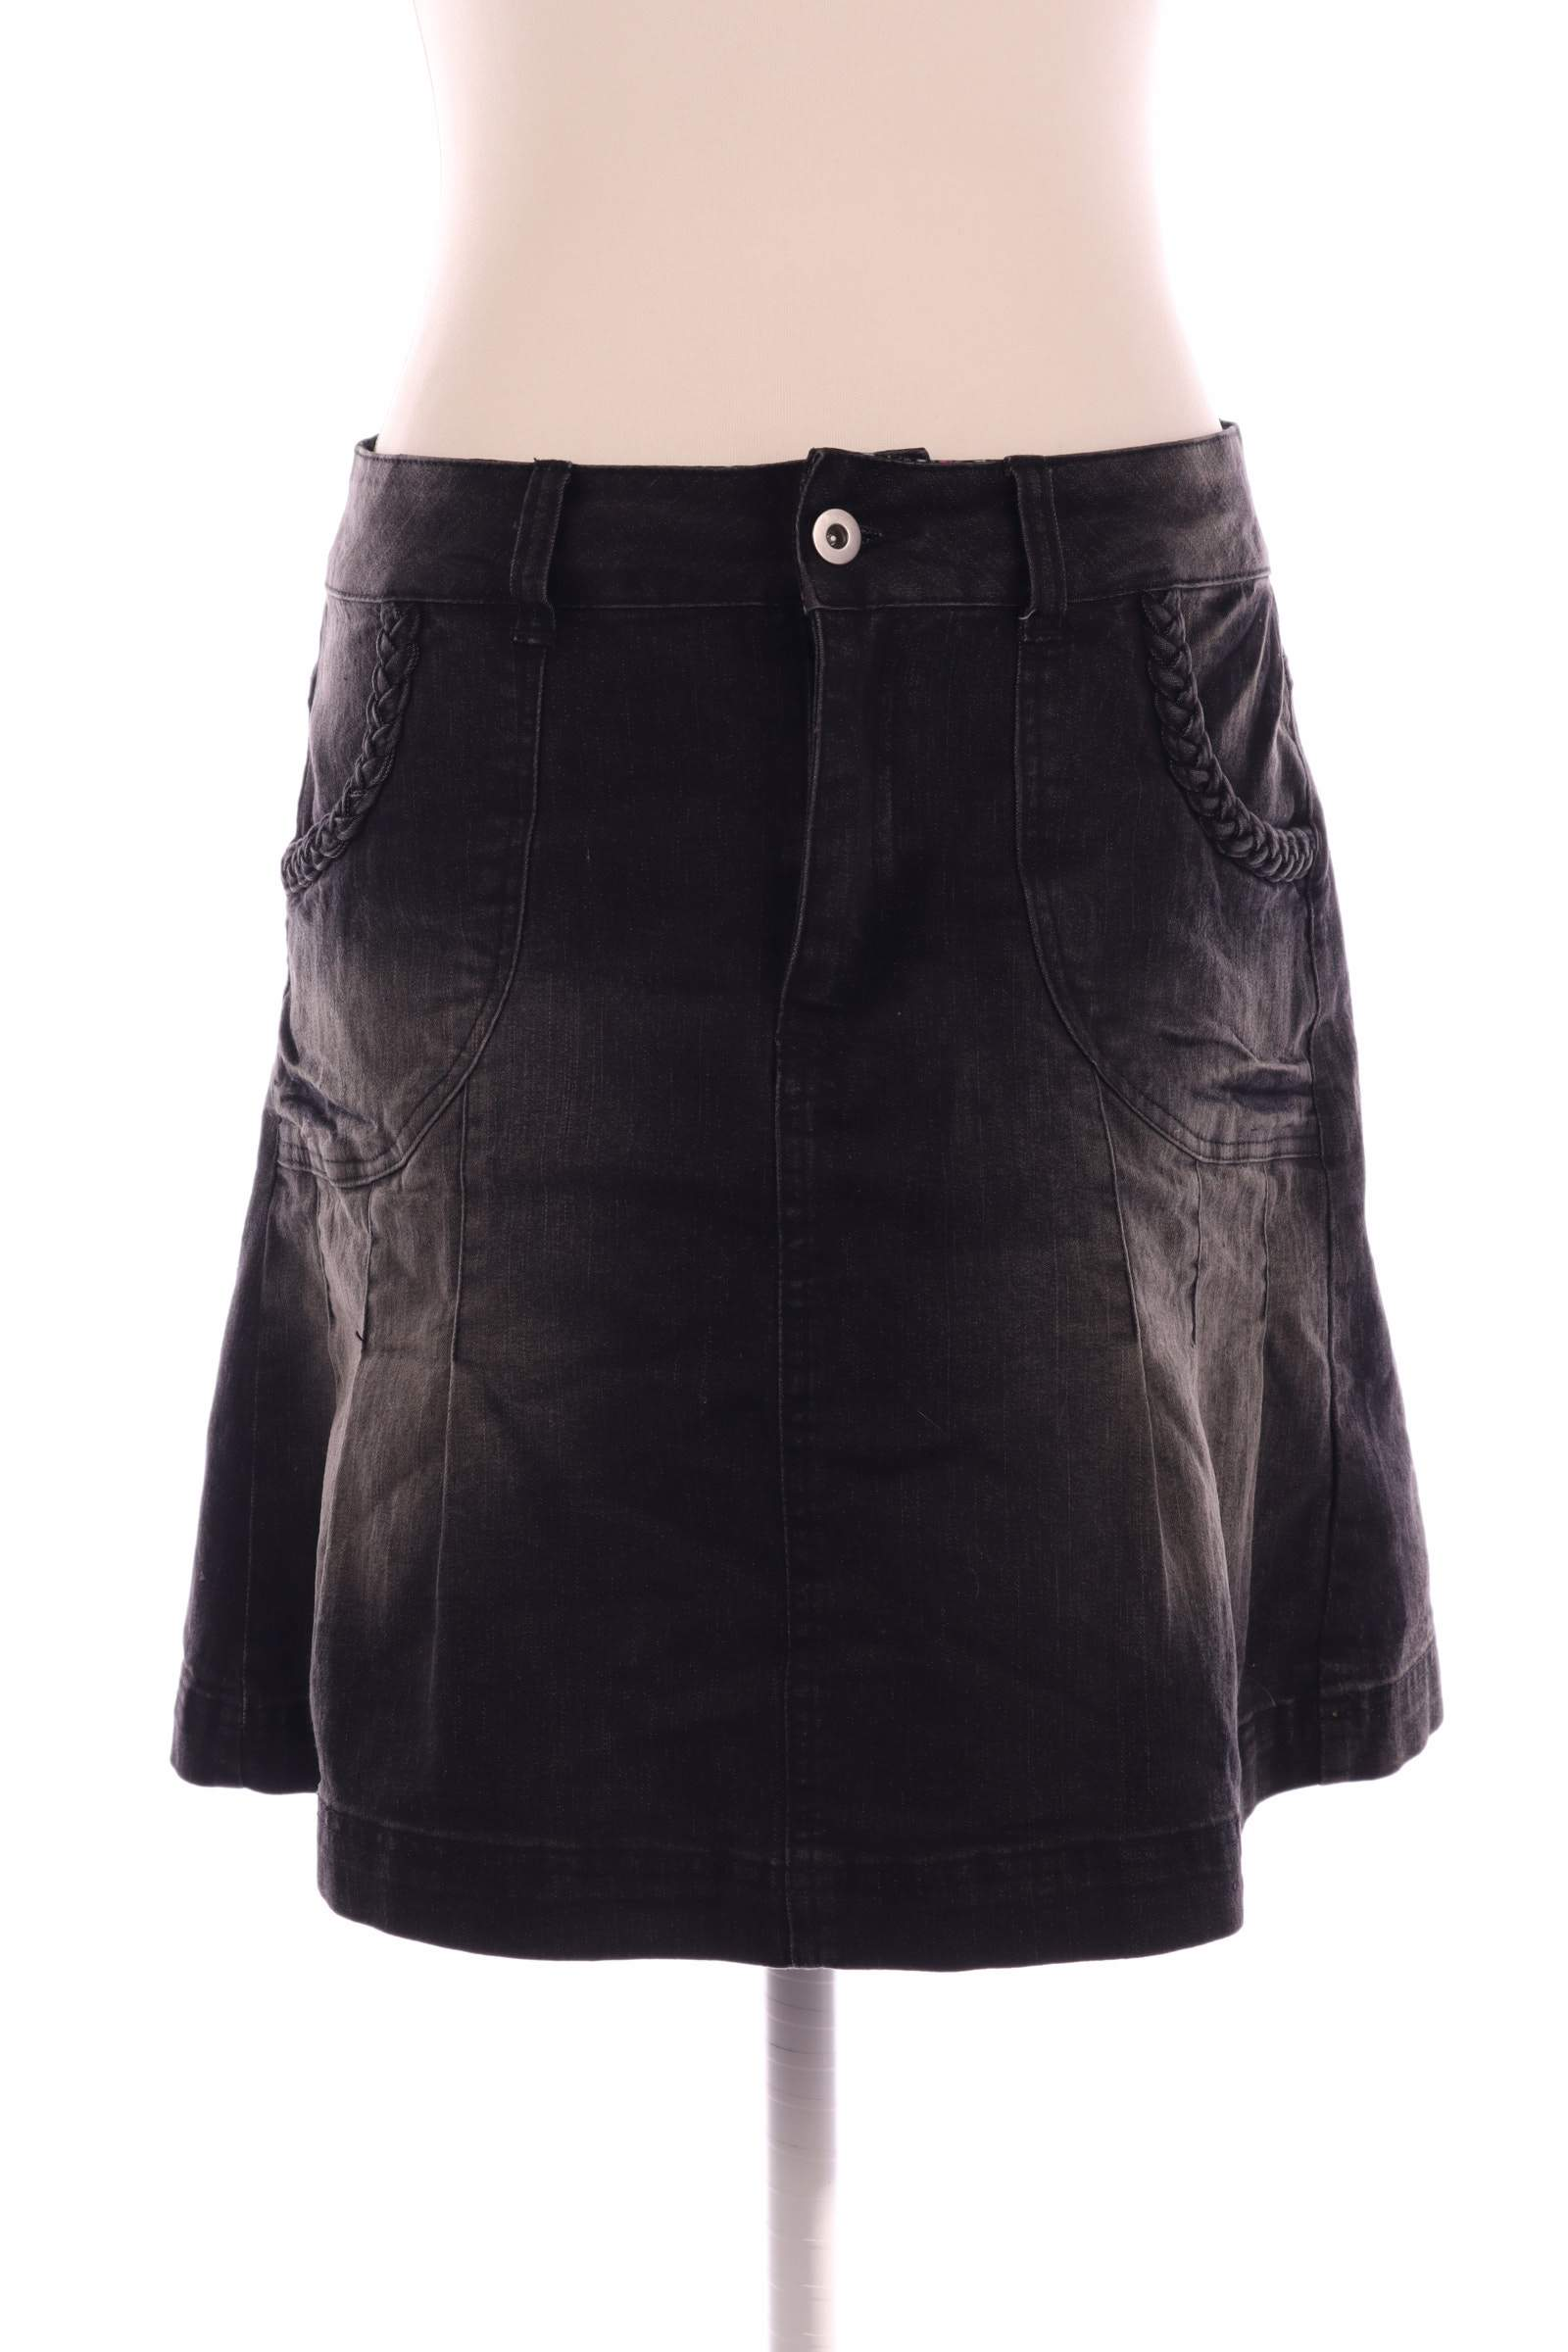 Isolde Black Skirt - upty.store